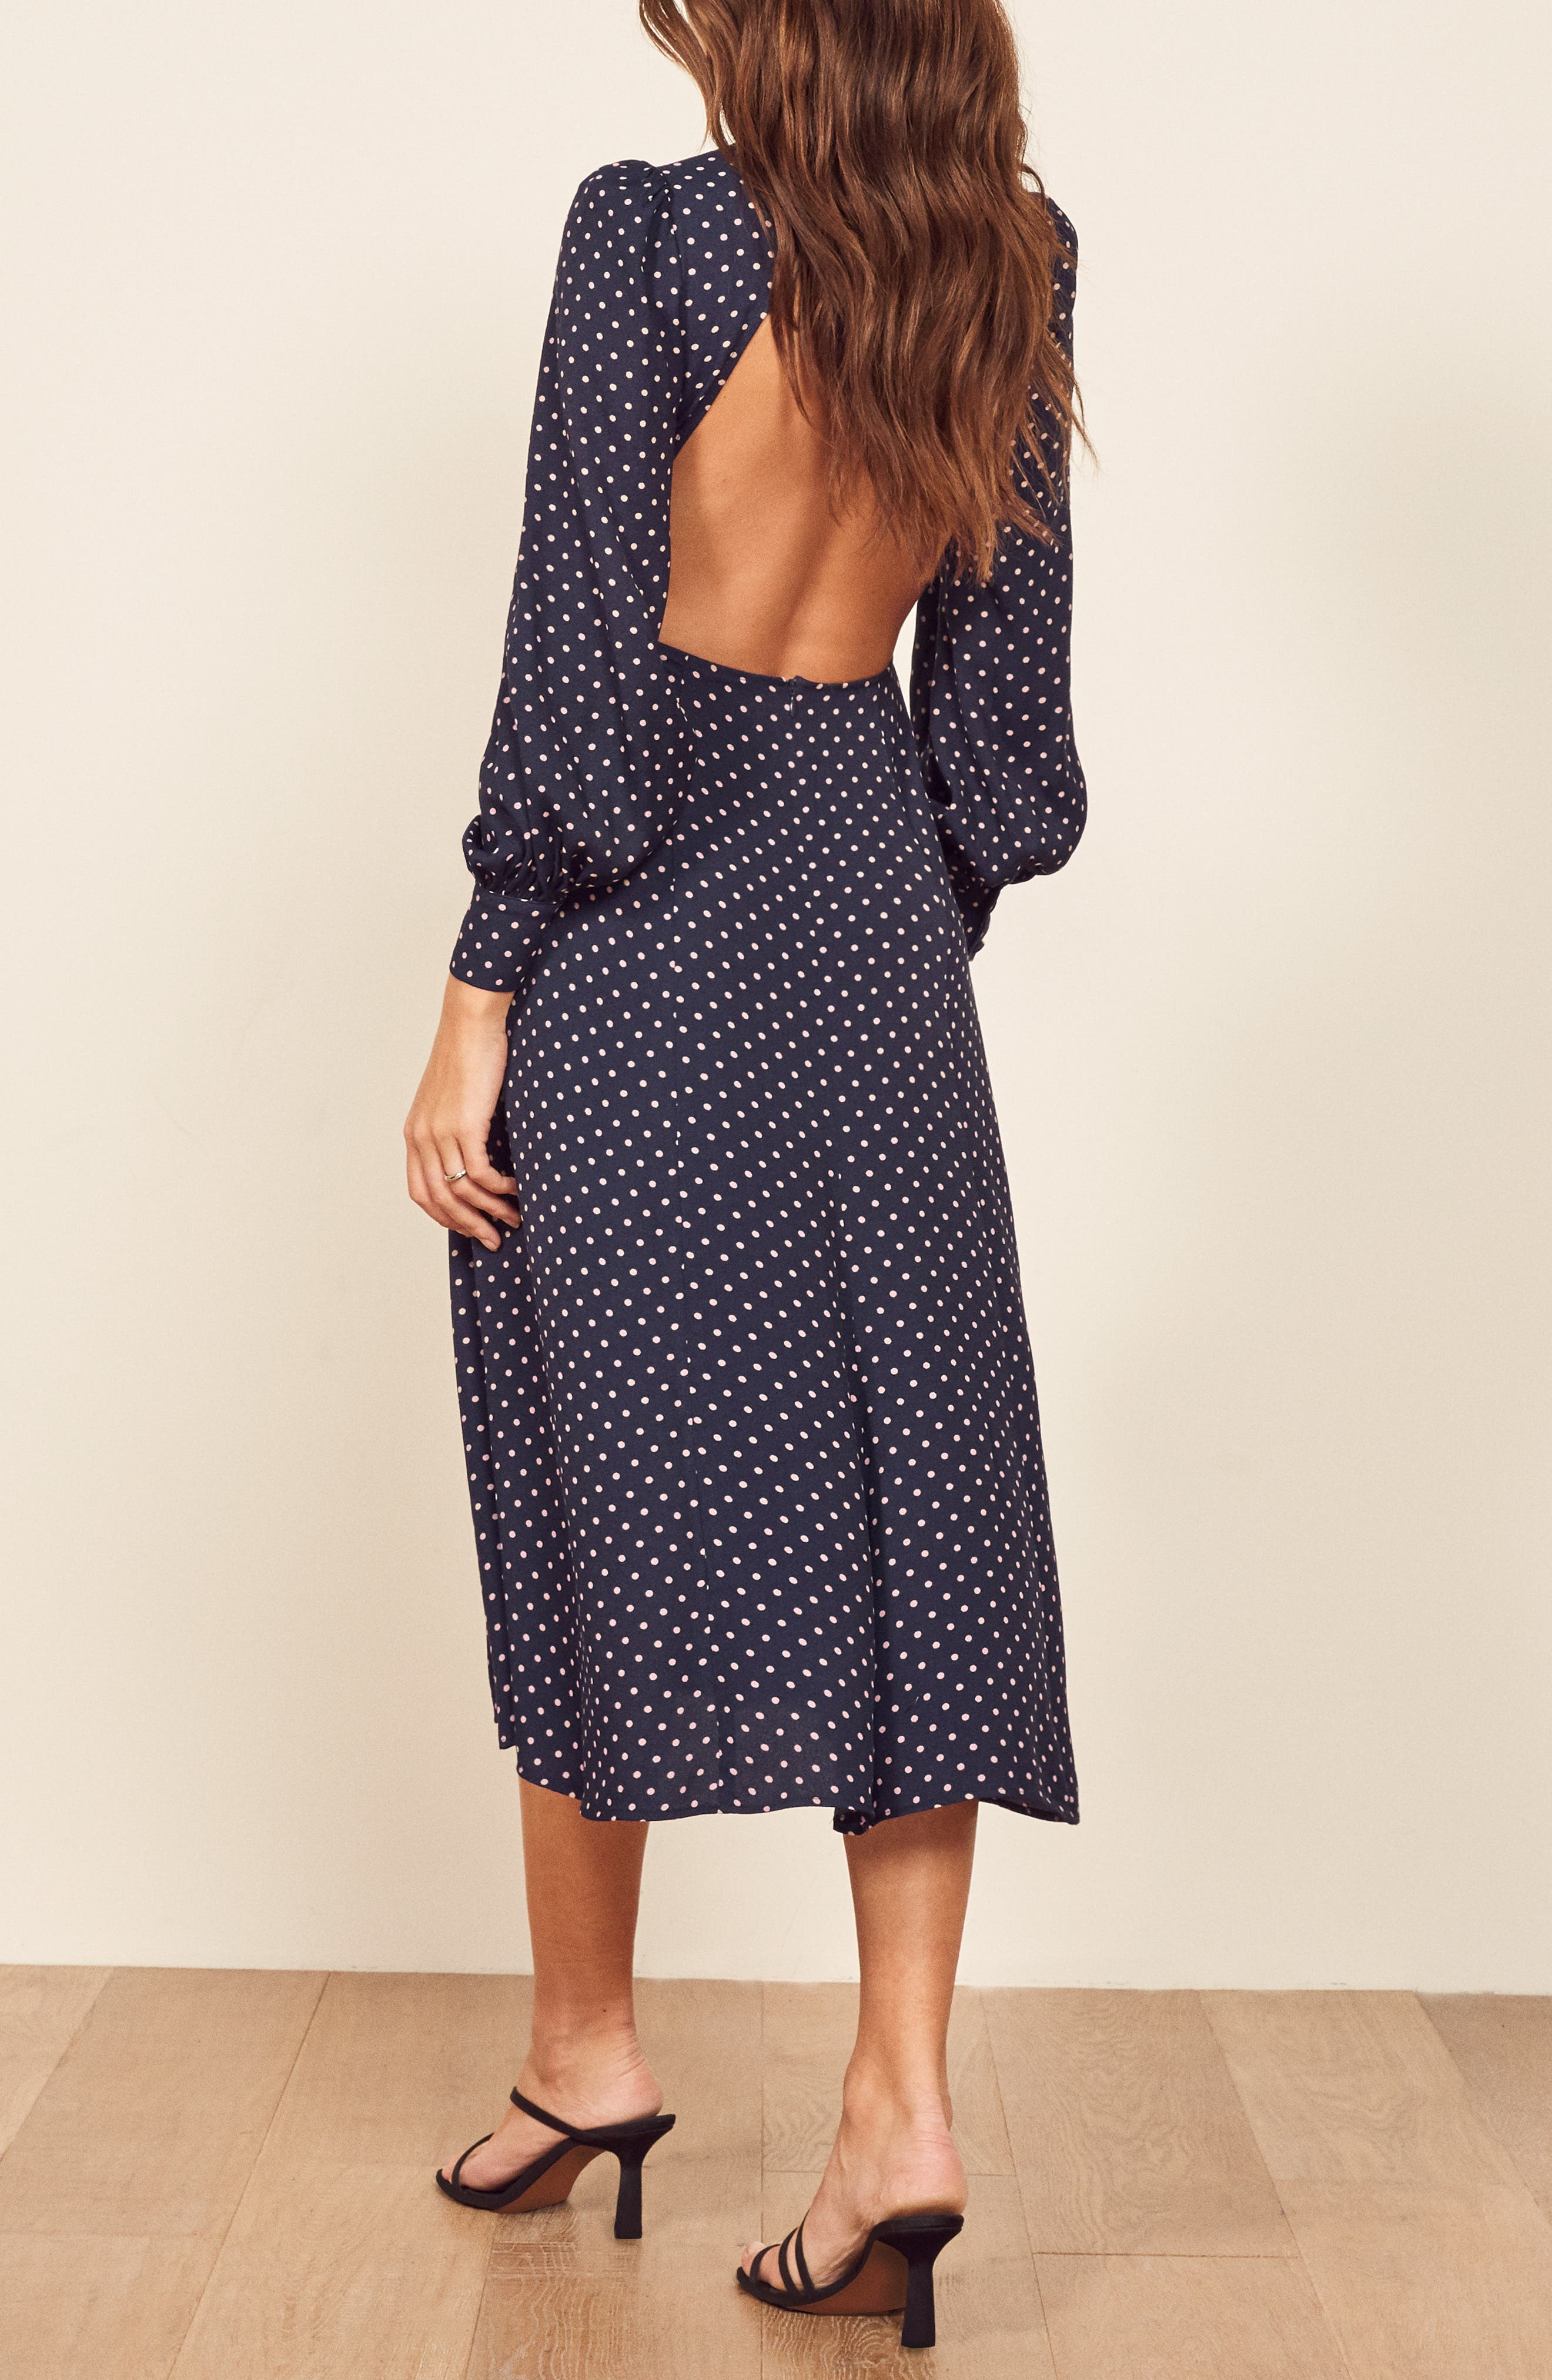 REFORMATION, Abigaile Long Sleeve Dress, Alternate thumbnail 4, color, AFTERNOON